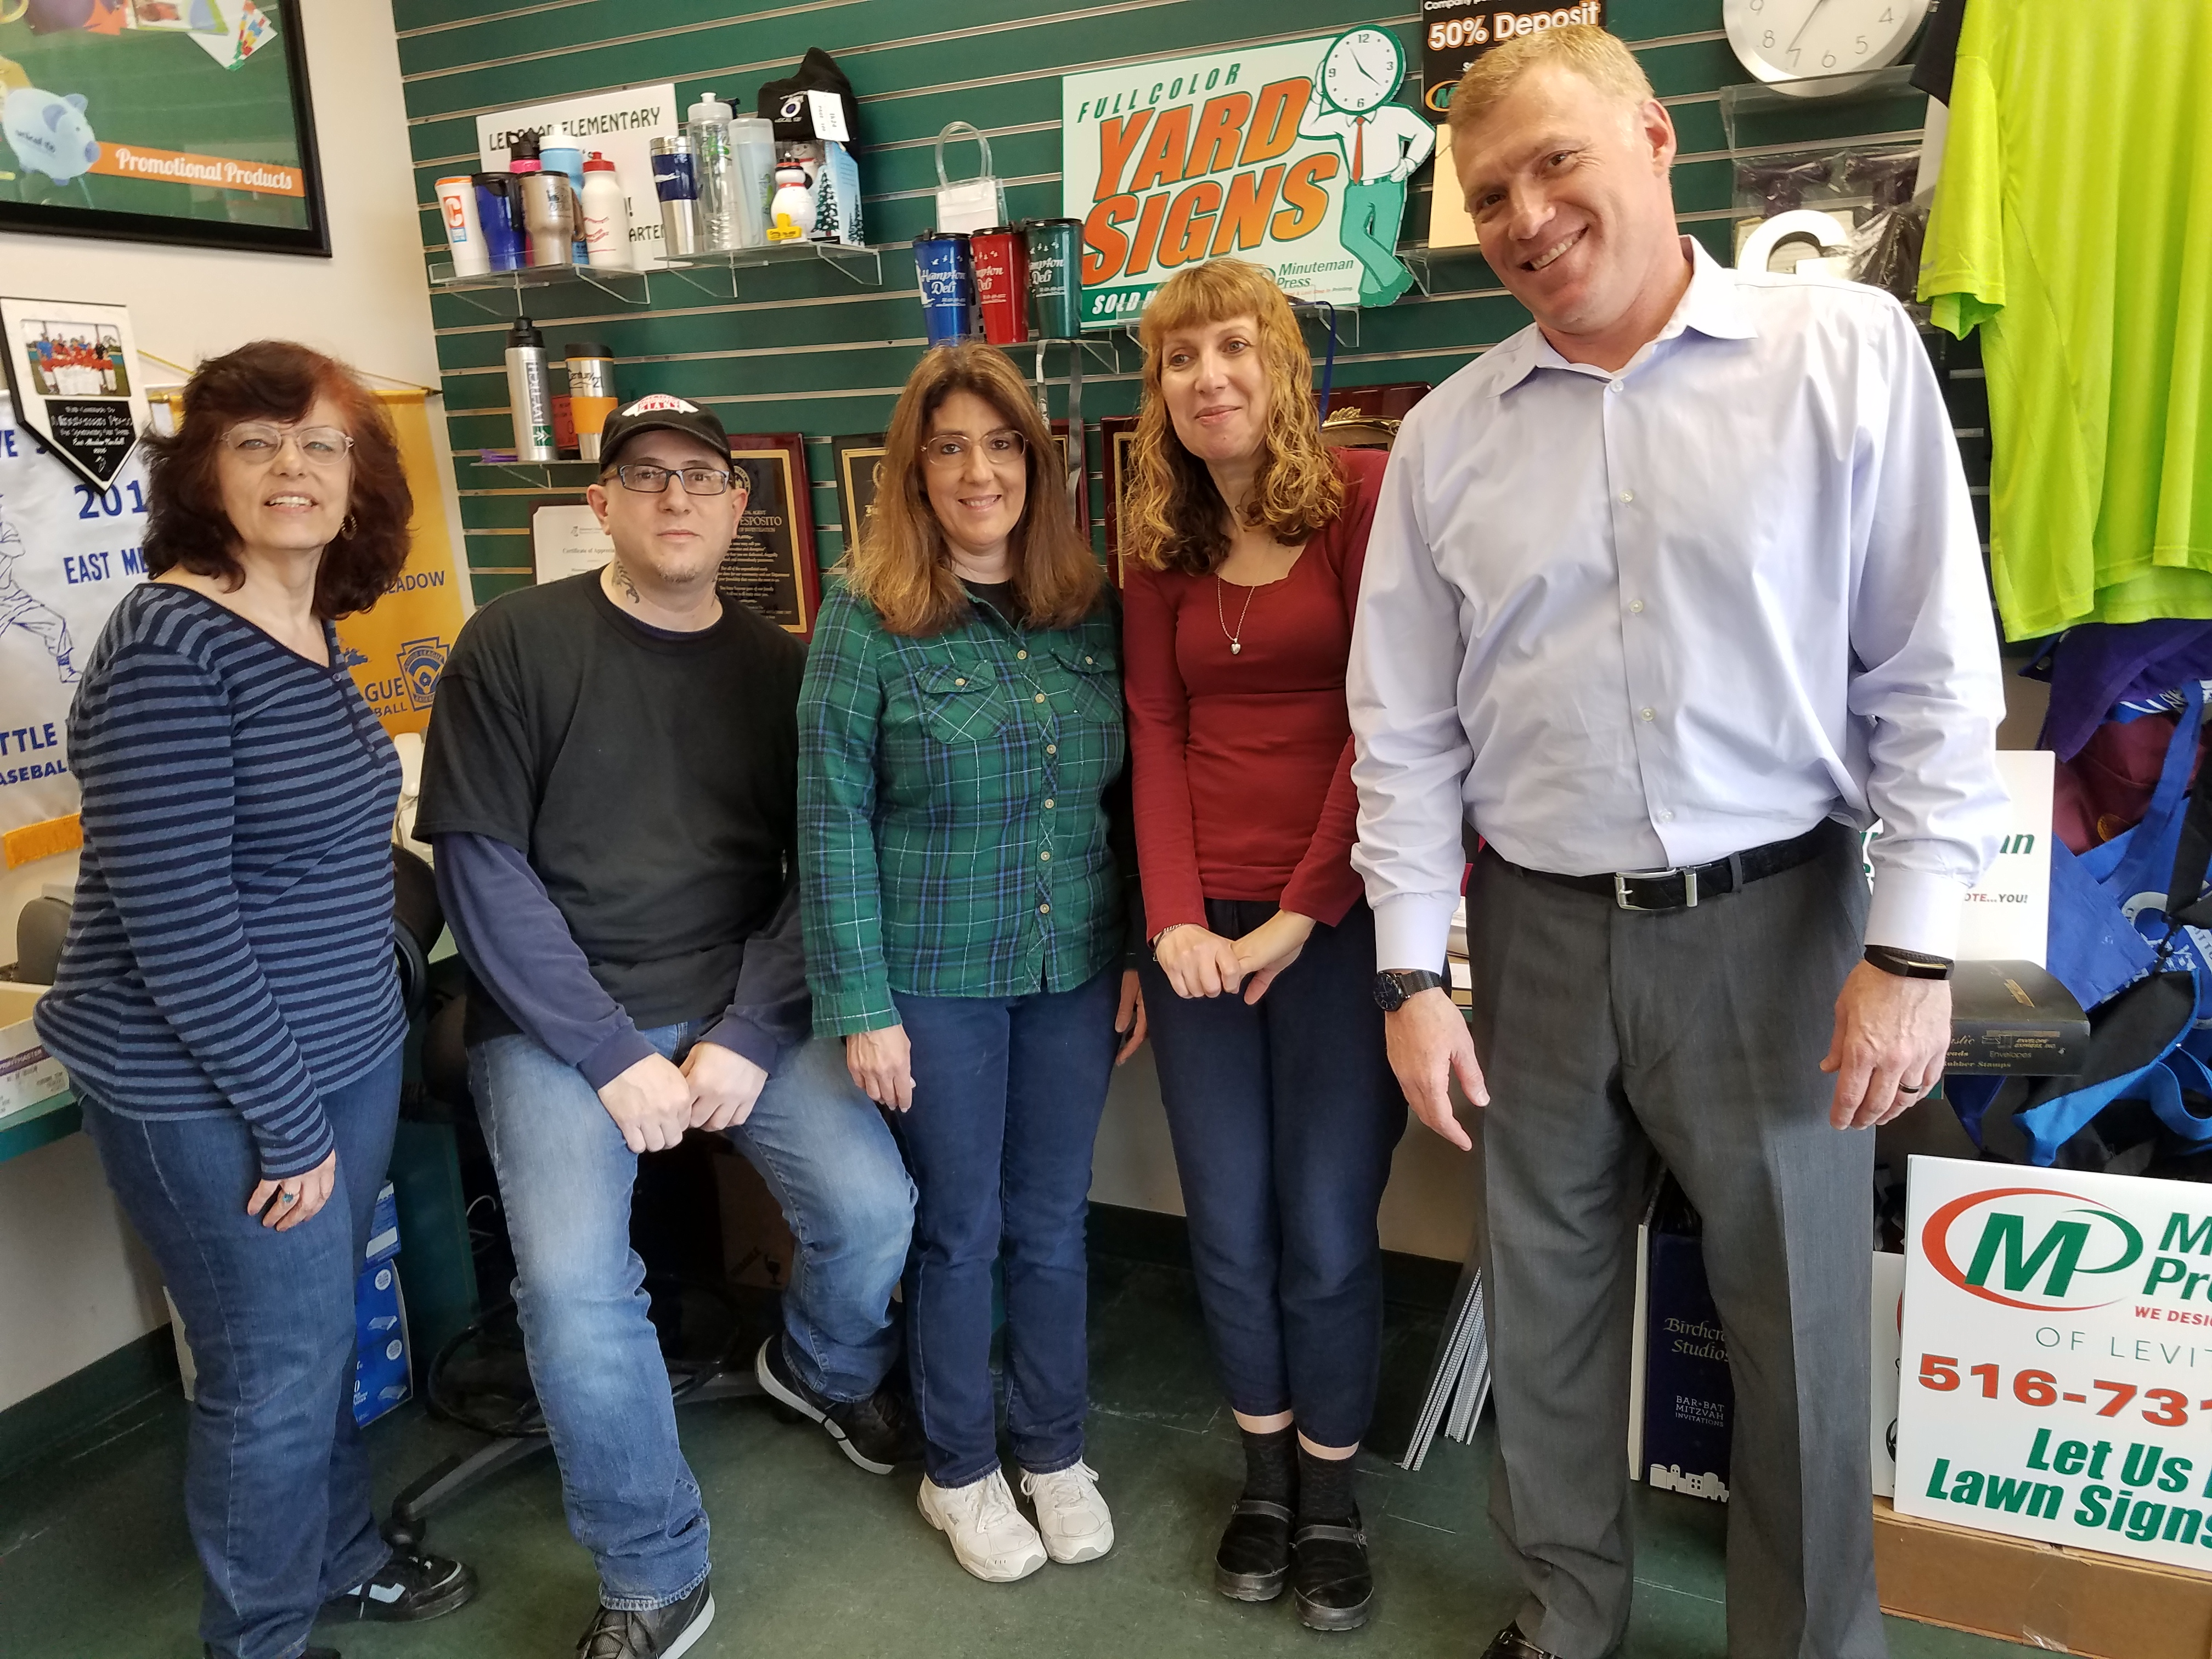 Minuteman Press Franchise in Levittown, NY Acquires Independent Printing Business Fullstop Printing, Expands Capabilities for Customers